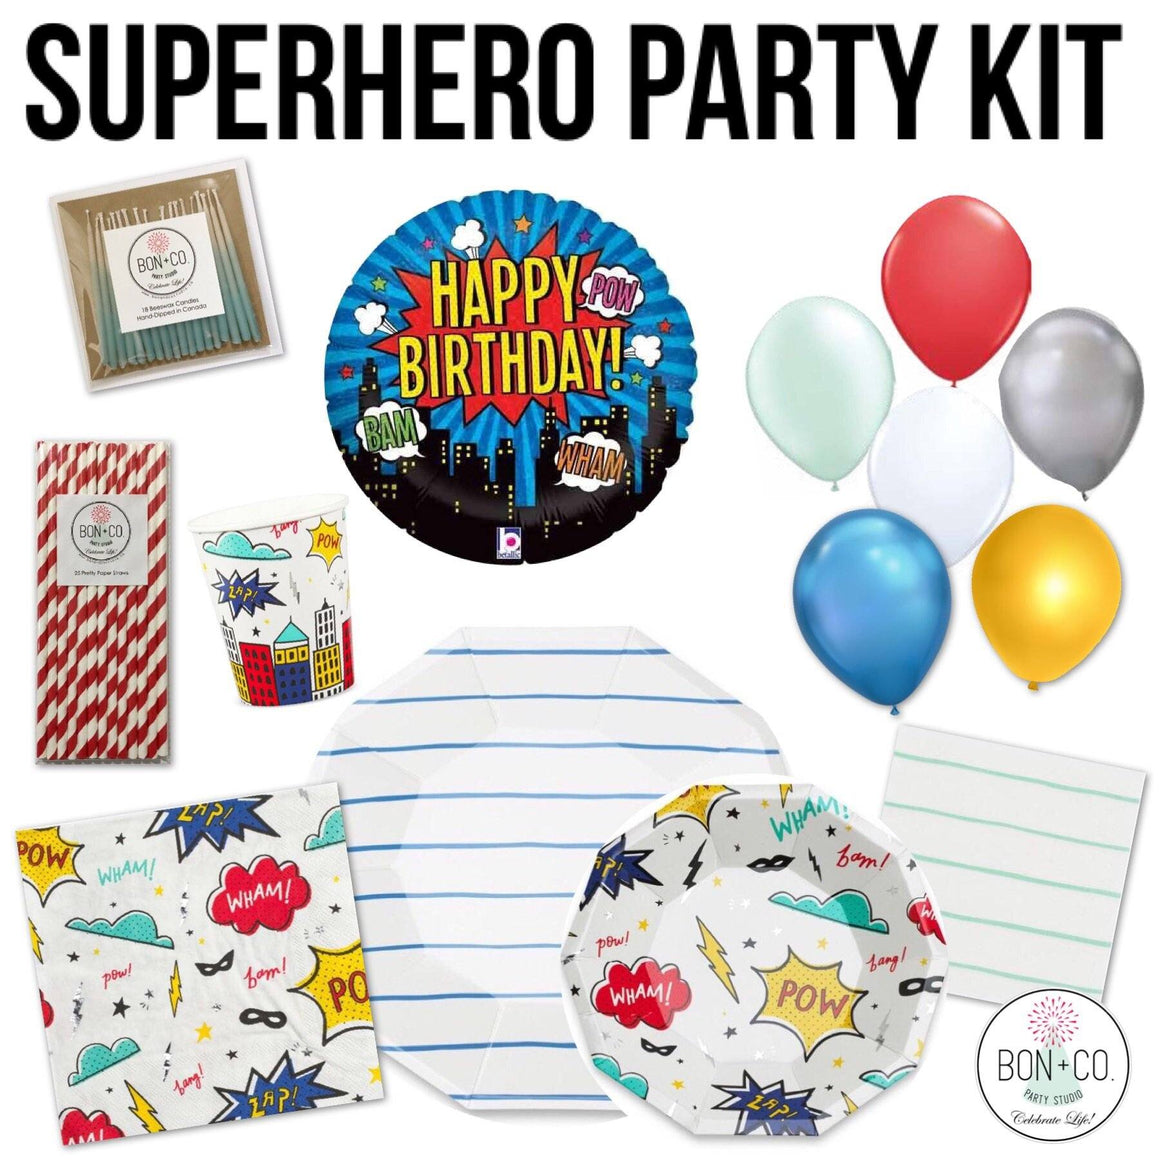 PARTY KIT - SUPERHERO